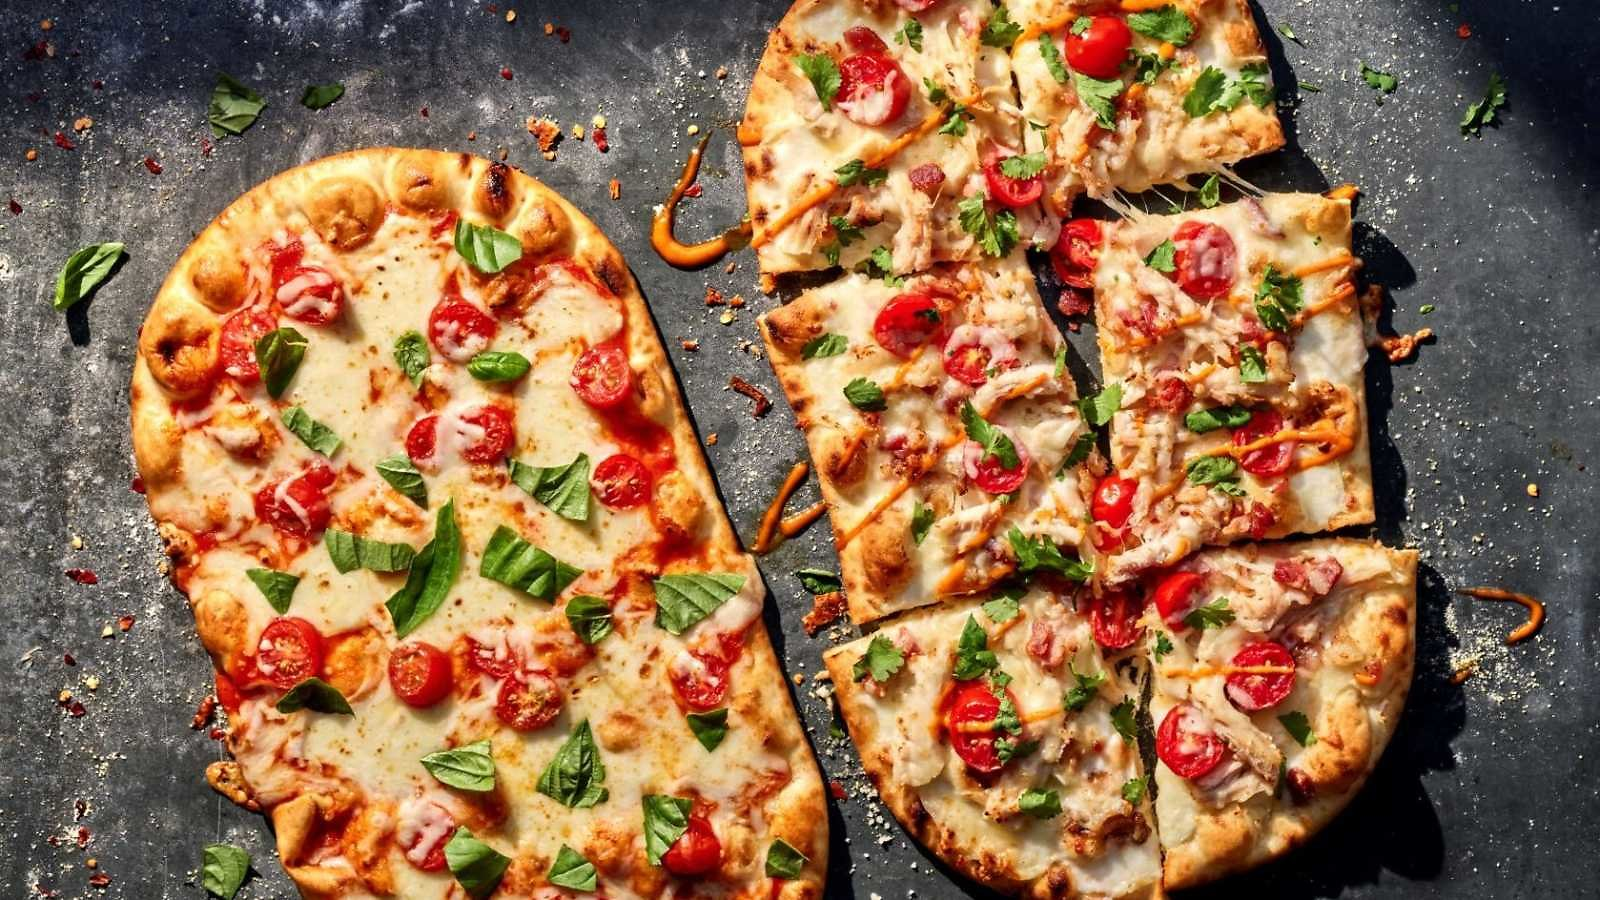 Panera Pizza Party? The Bread Goes Flat As The Restaurant Introduces Three New Items to Its Dinner Menu